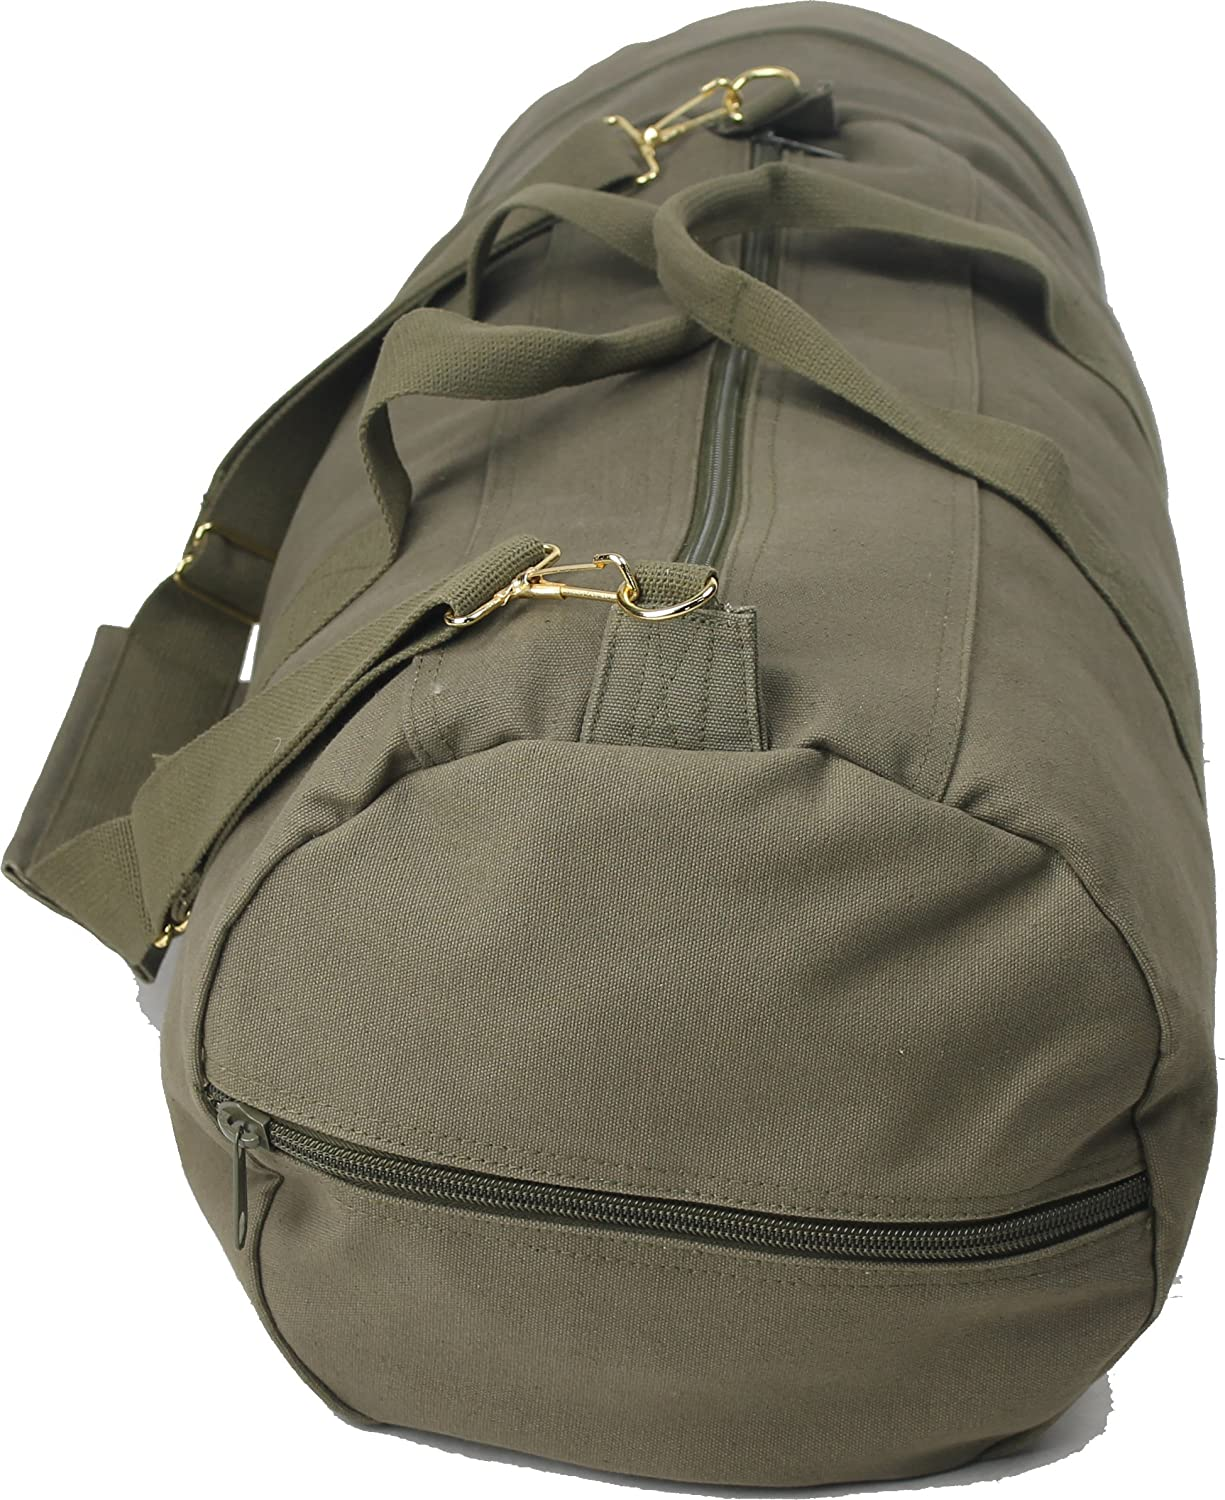 Olive Drab - Military Double-Ender Sports Shoulder Bag (Cotton Canvas) by Army  Universe  Amazon.in  Sports 33f0df3b146